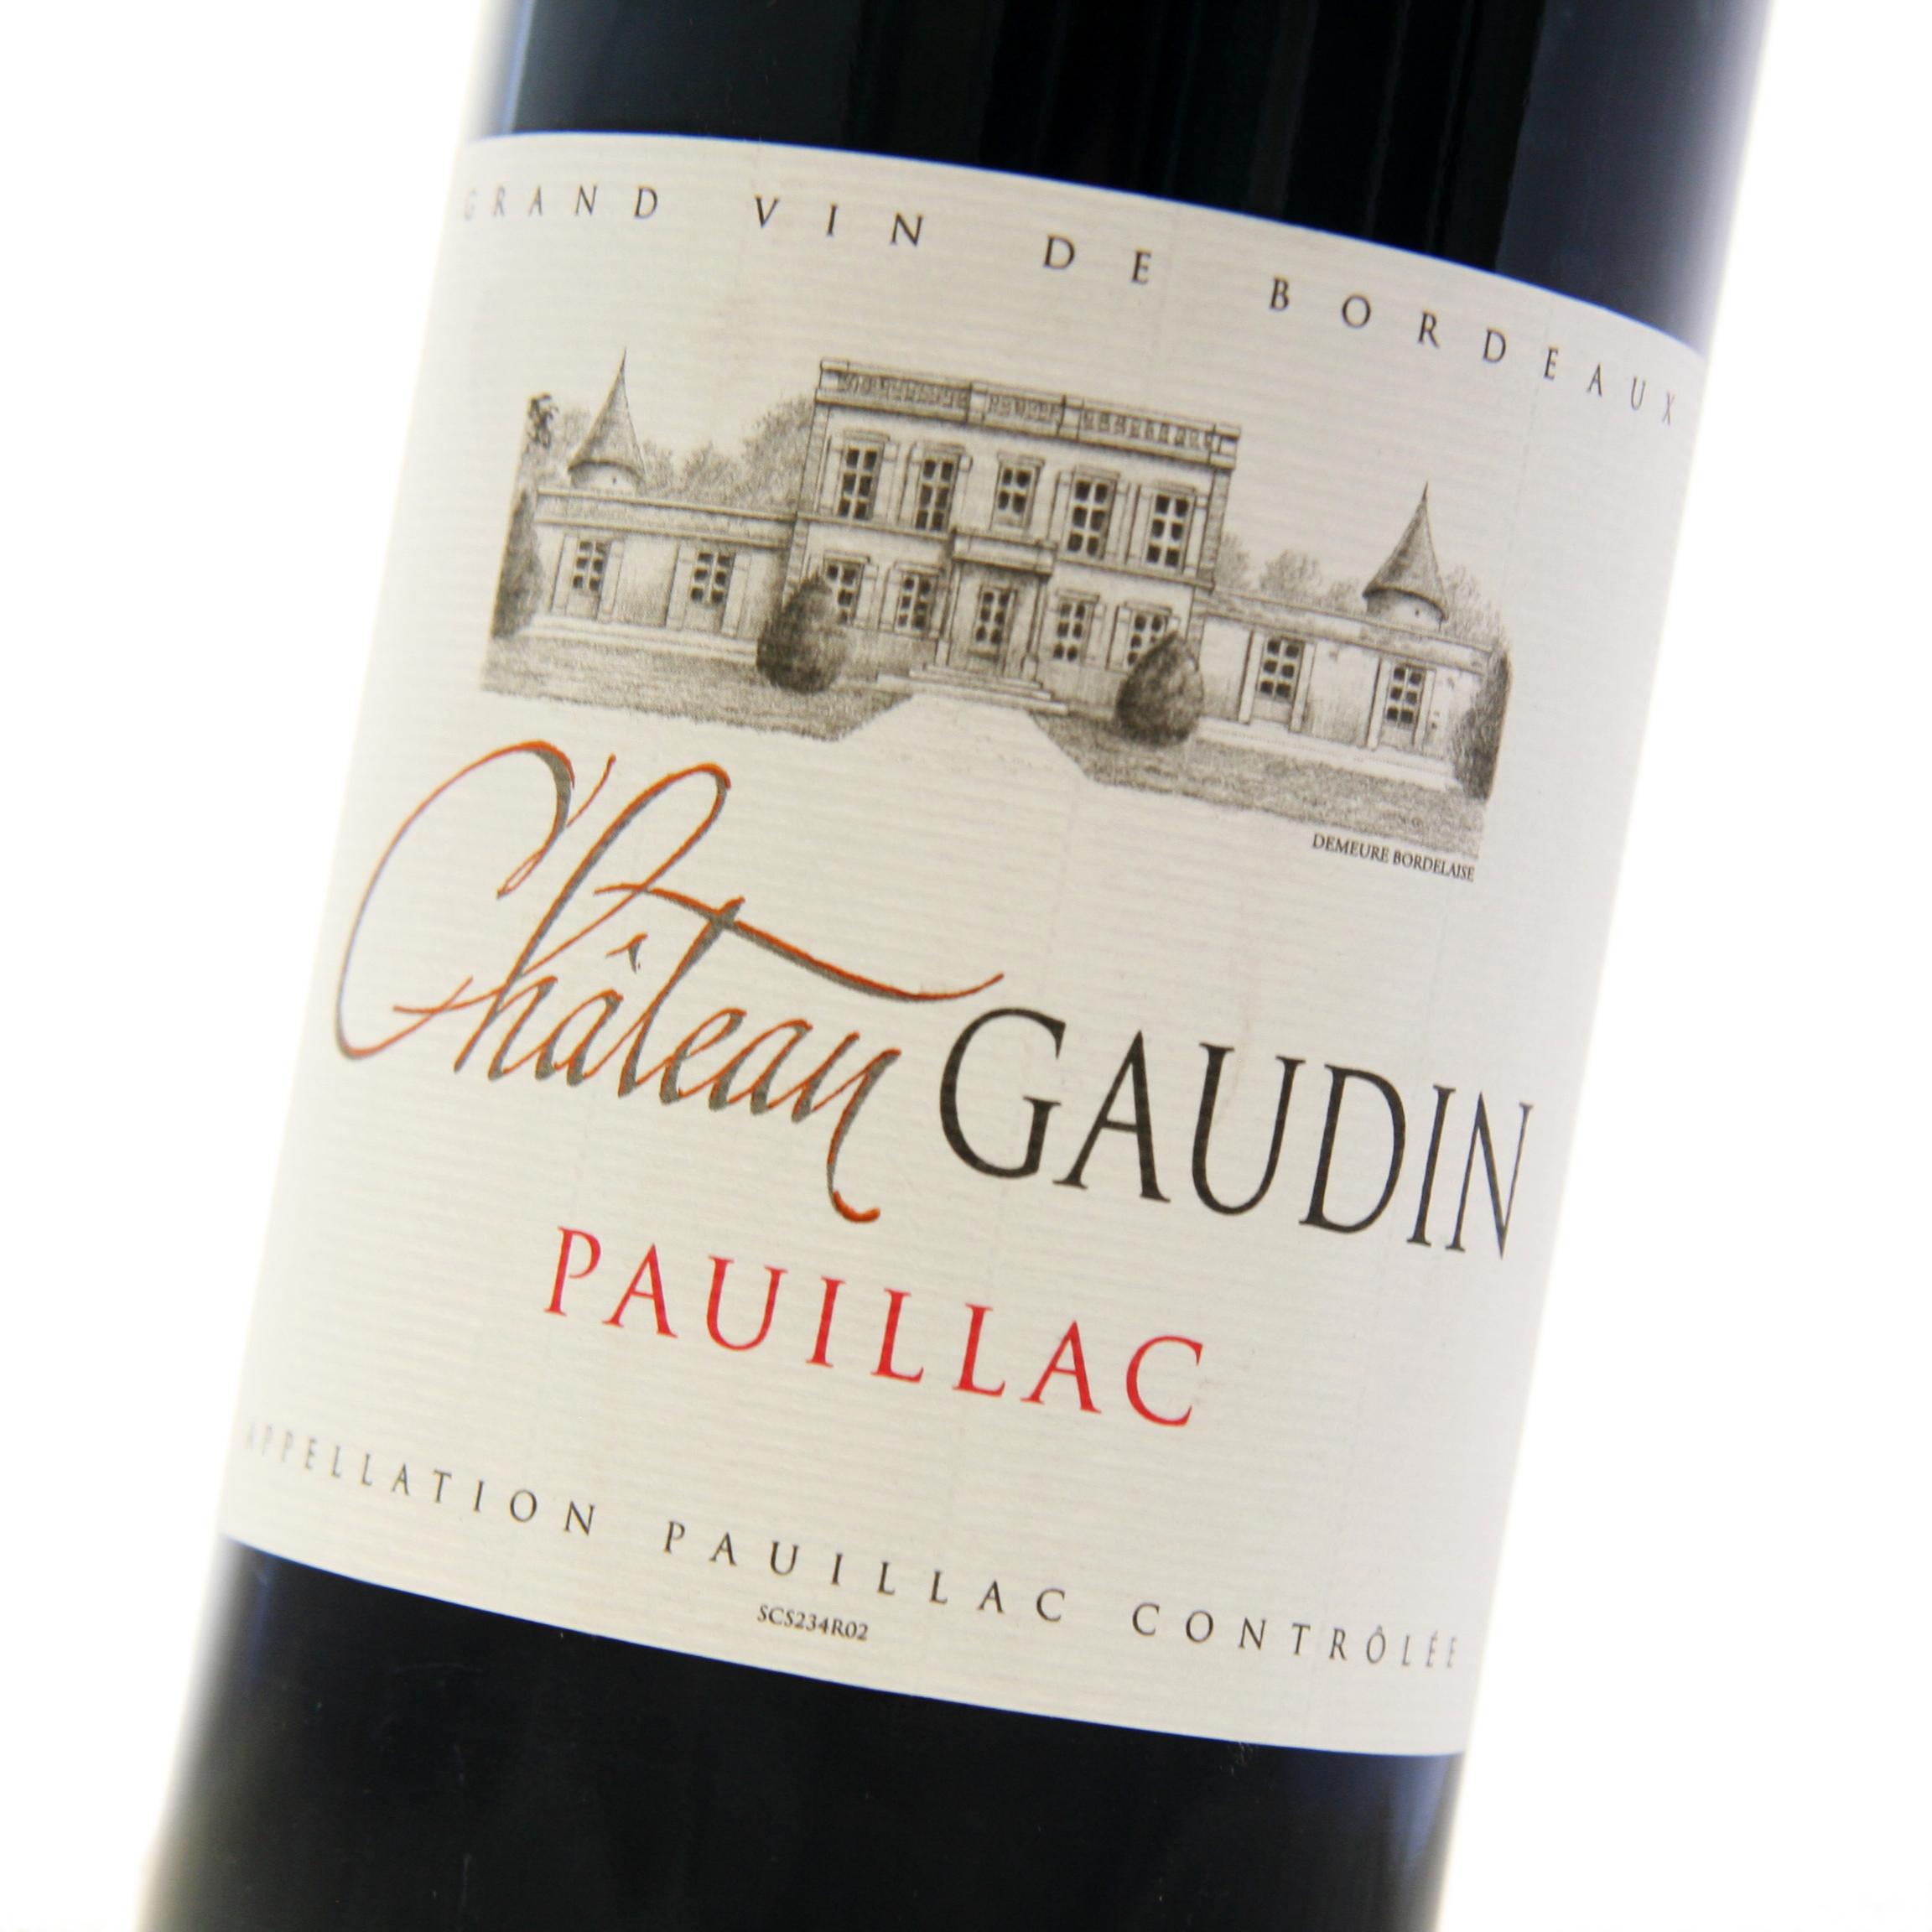 Chateau Gaudin - Pauillac 2015 6x 75cl Bottles